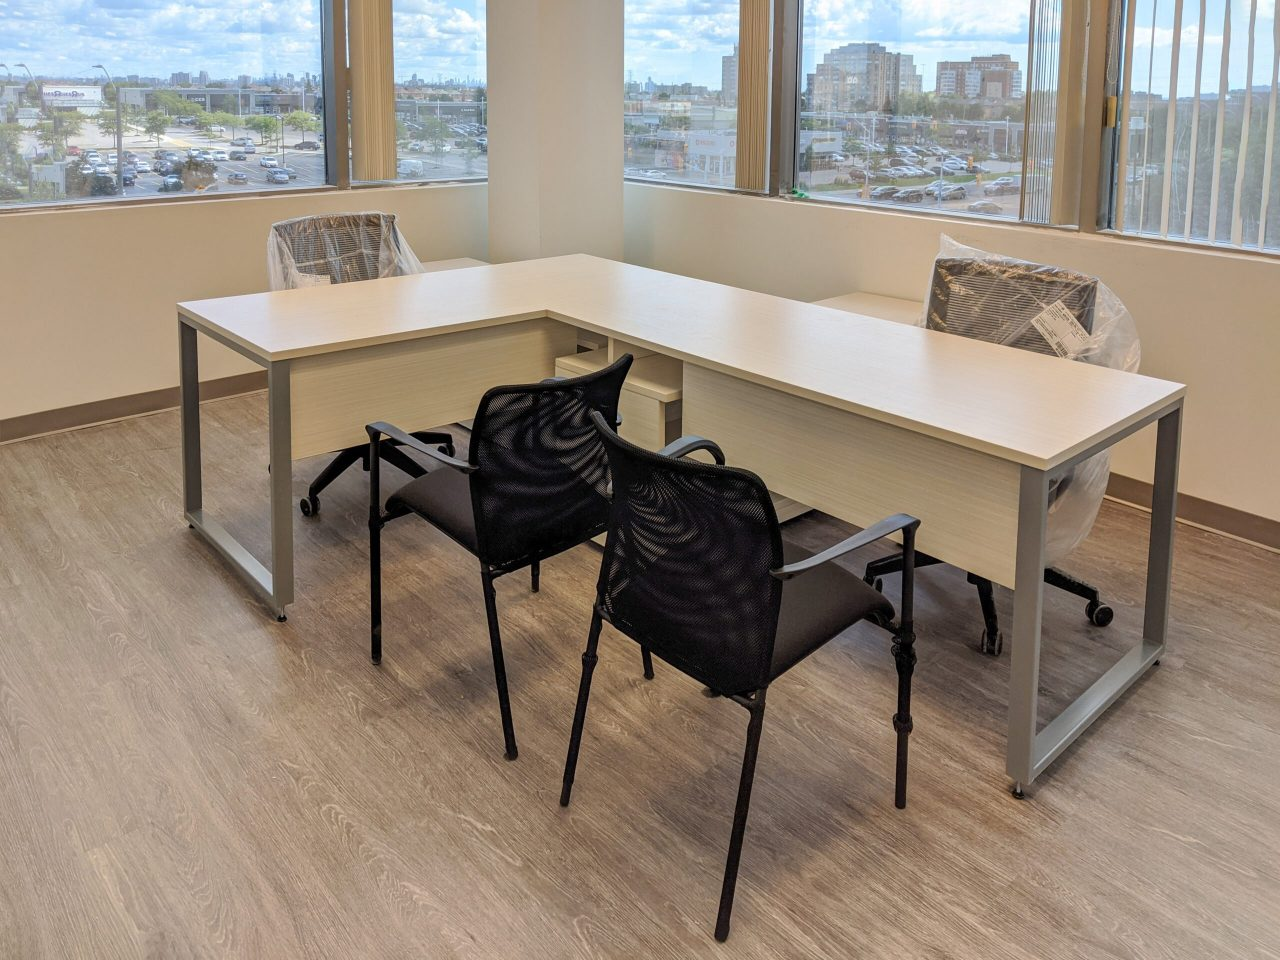 L-Shaped Desk with O-Leg Base, Office Chairs, Visitor Chairs